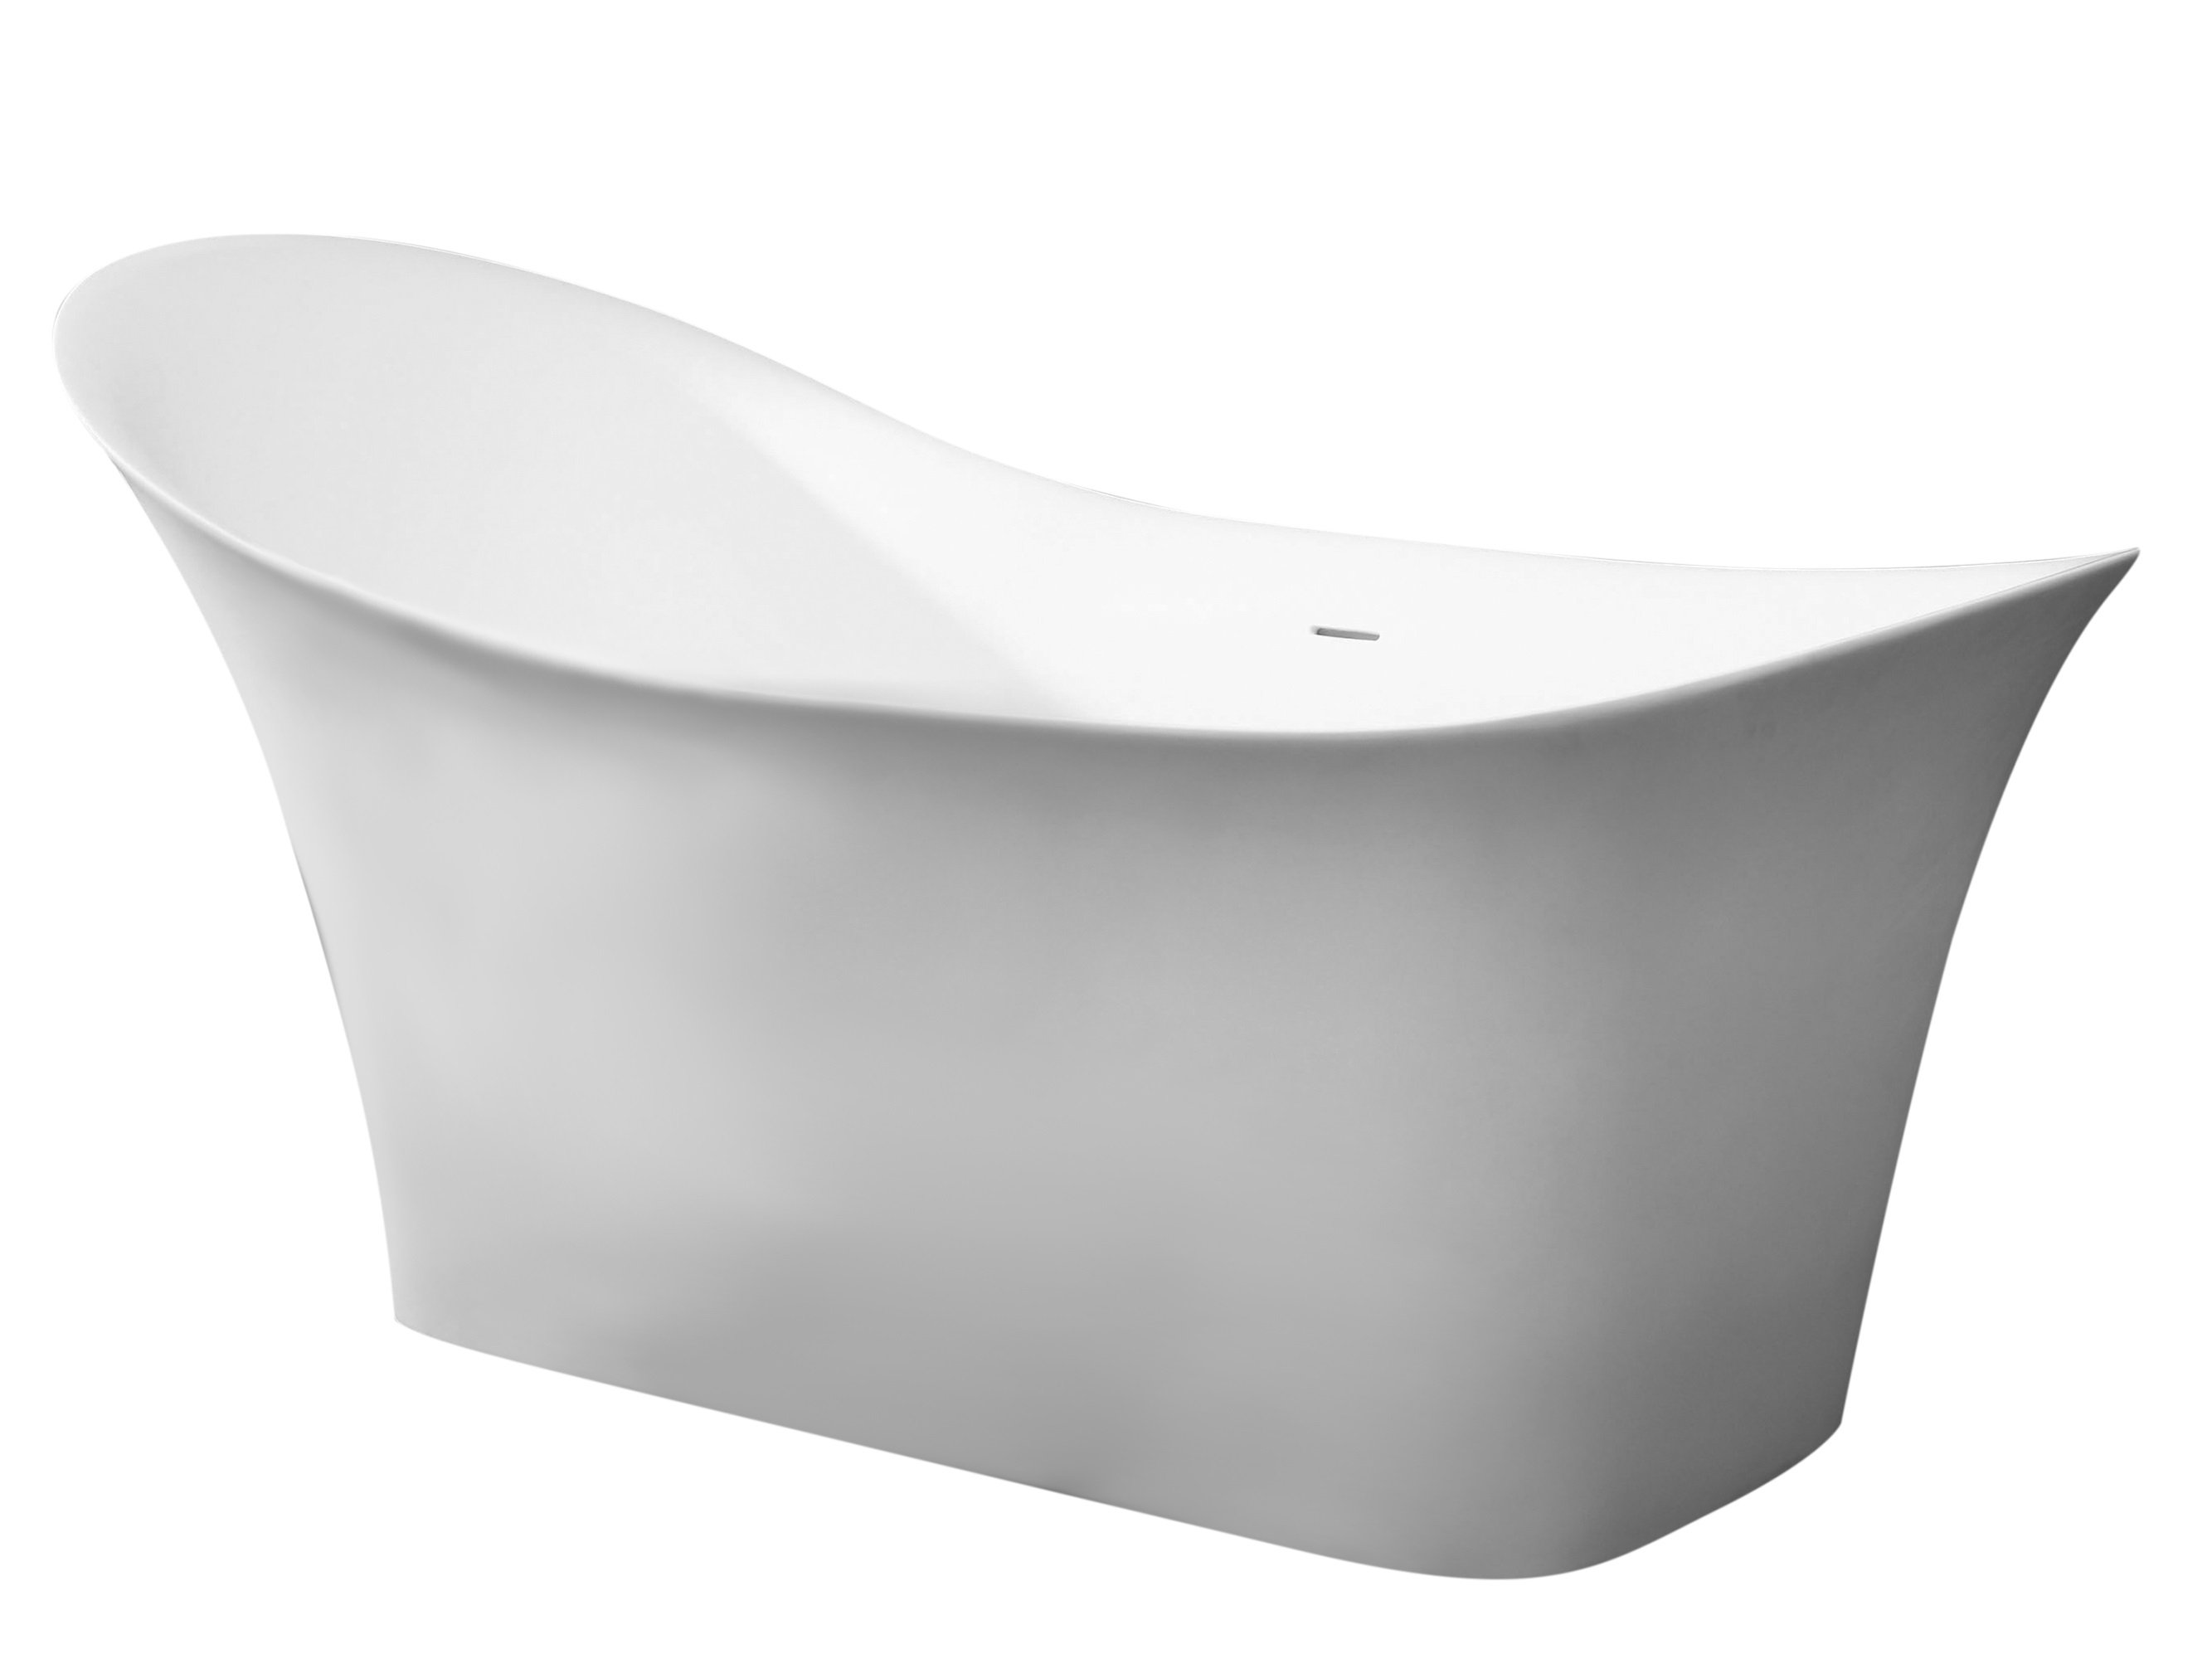 ALFI brand AB9915 74 in. Solid Surface Smooth Resin Soaking Slipper Bathtub, White